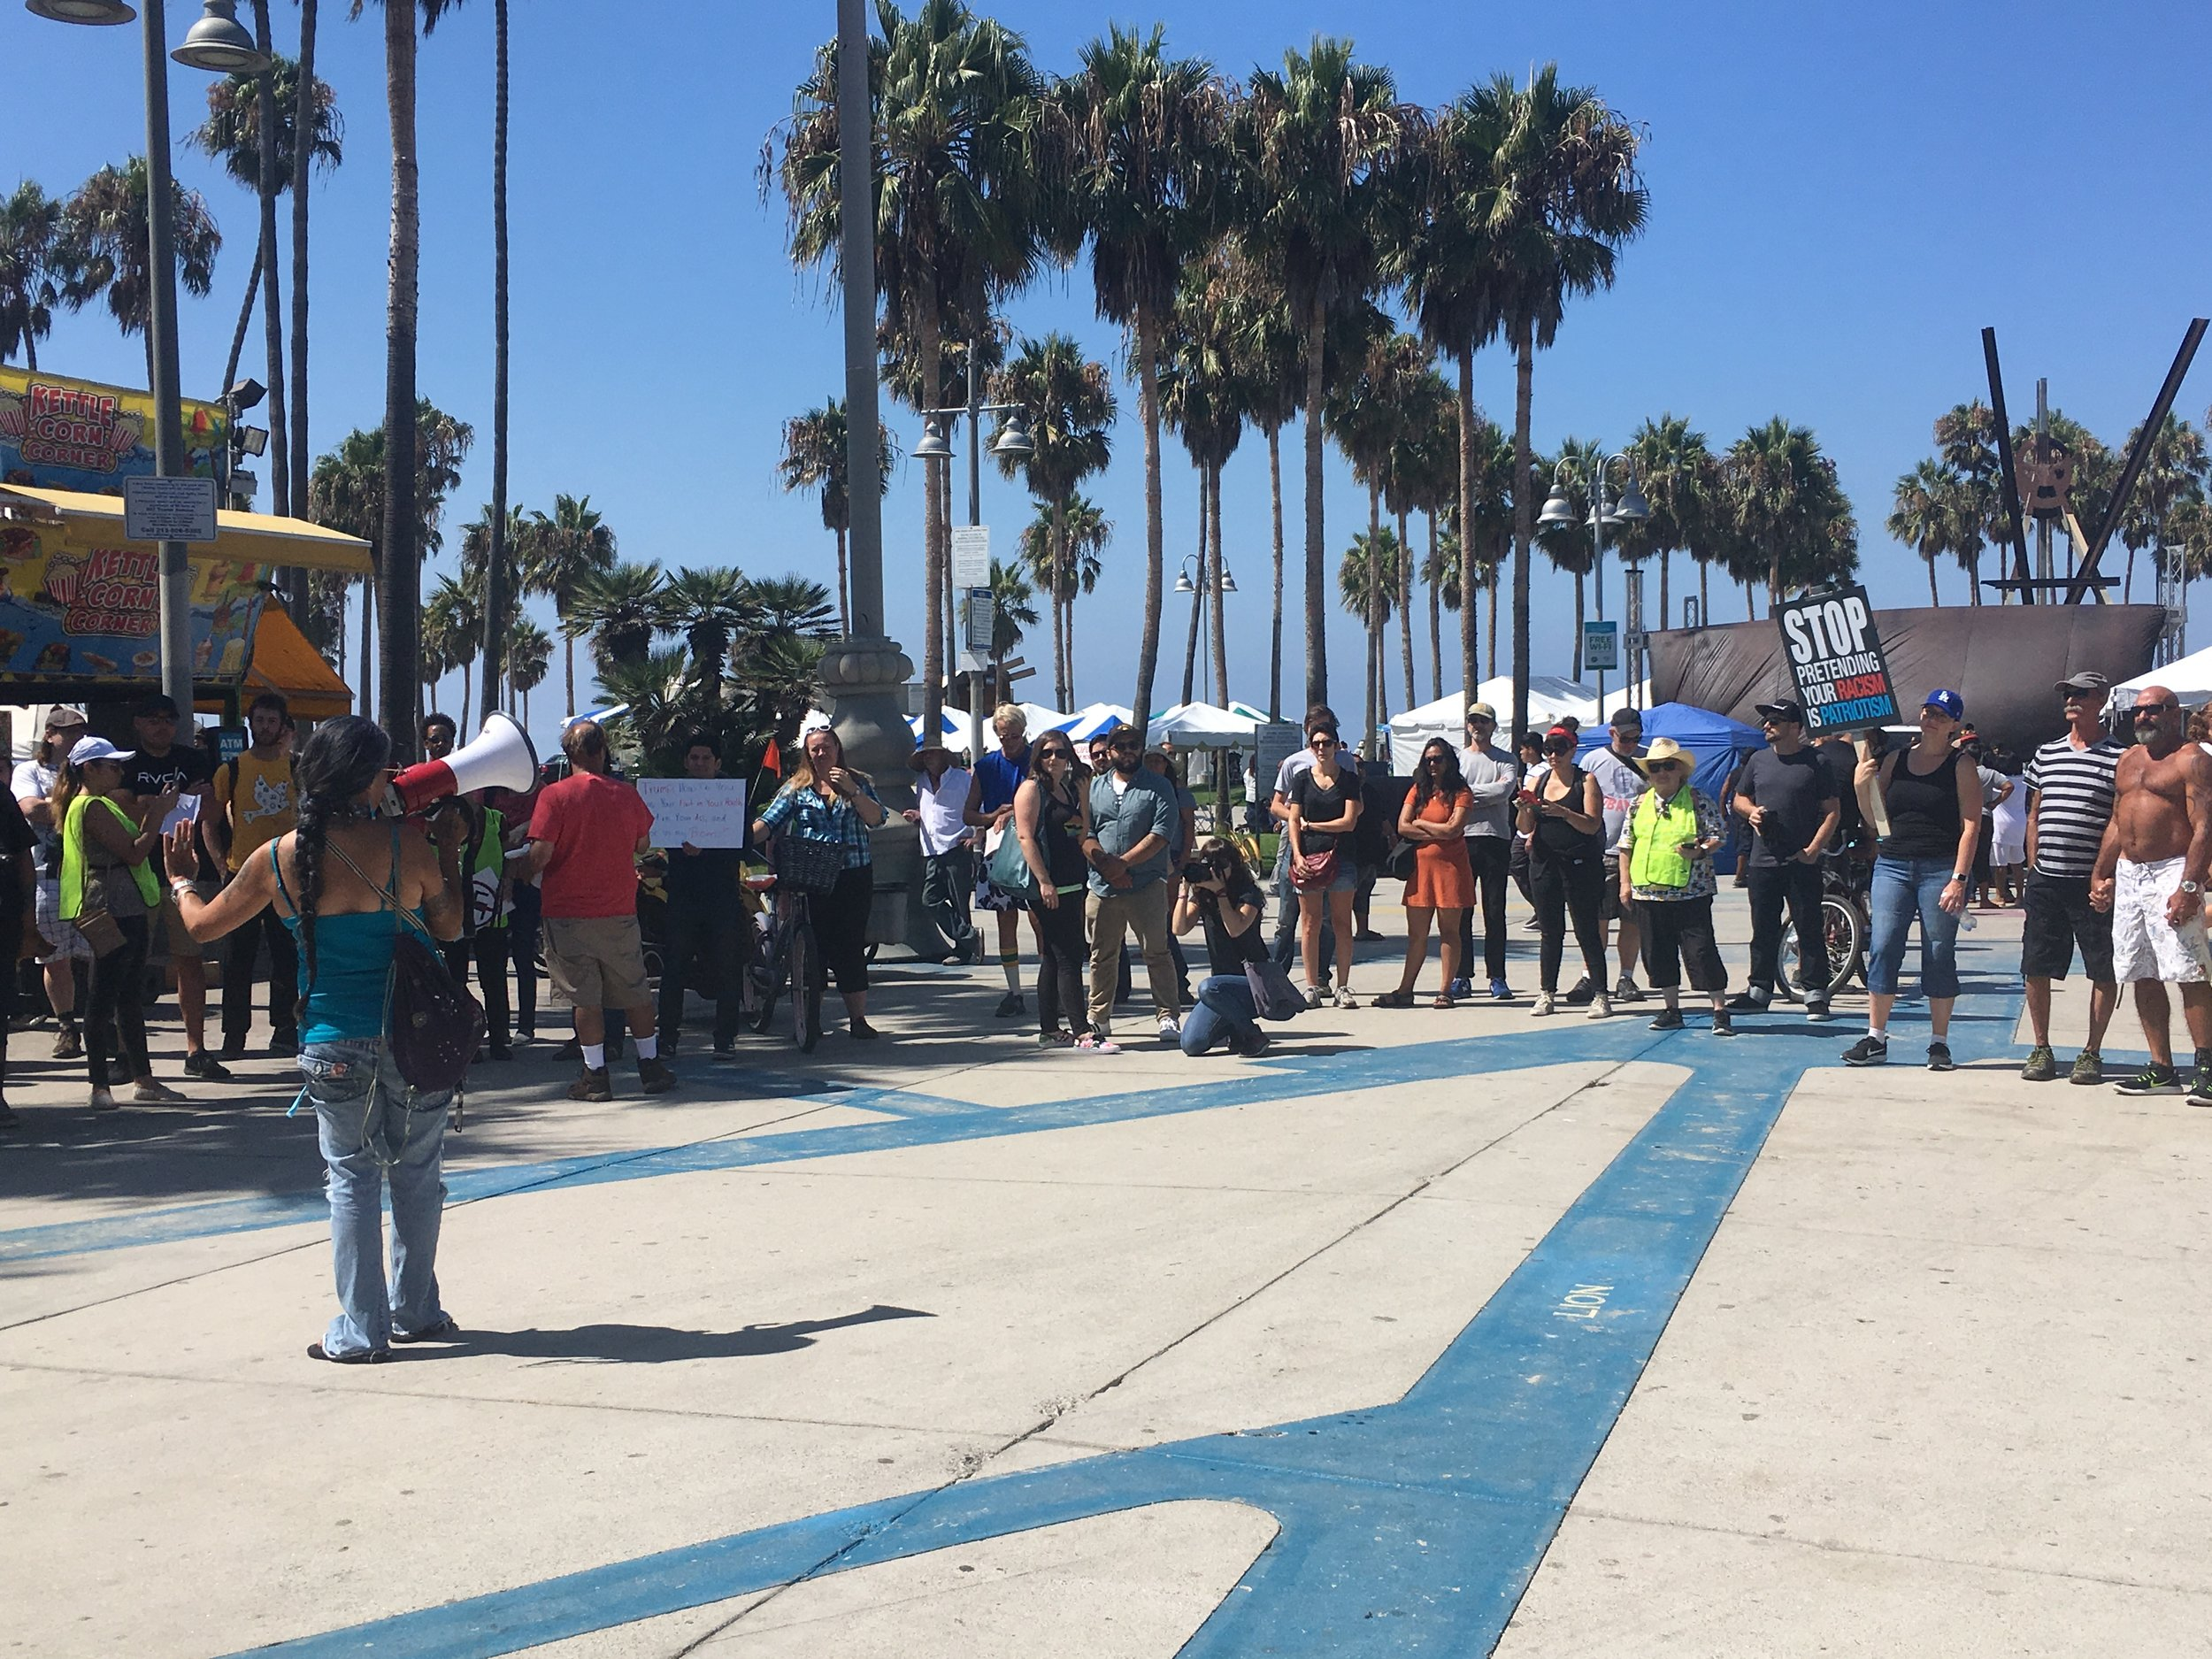 Protestors gather around at Venice beach on Aug. 19.